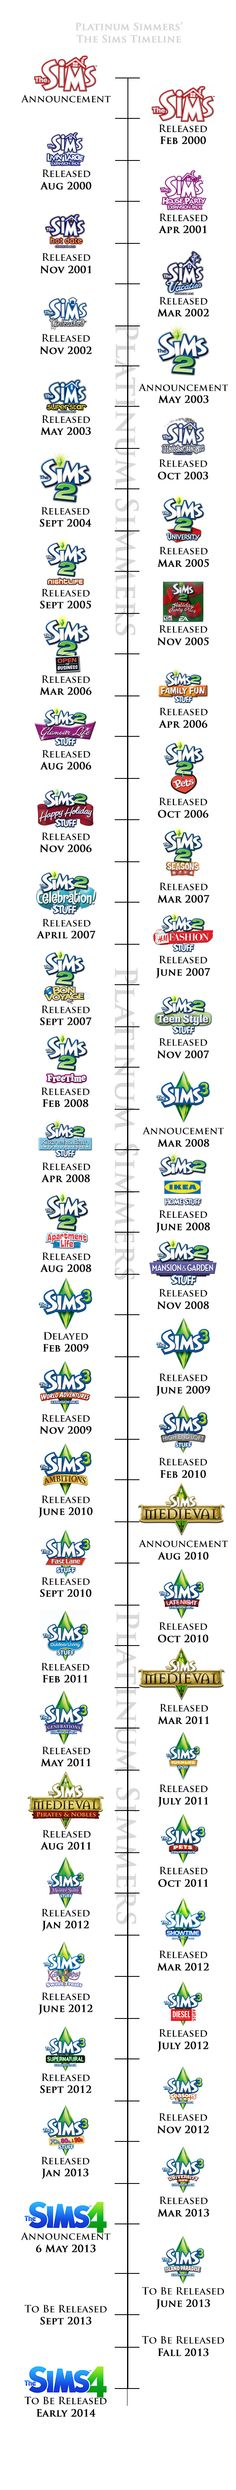 The Sims History in Timelines • Platinum Simmers